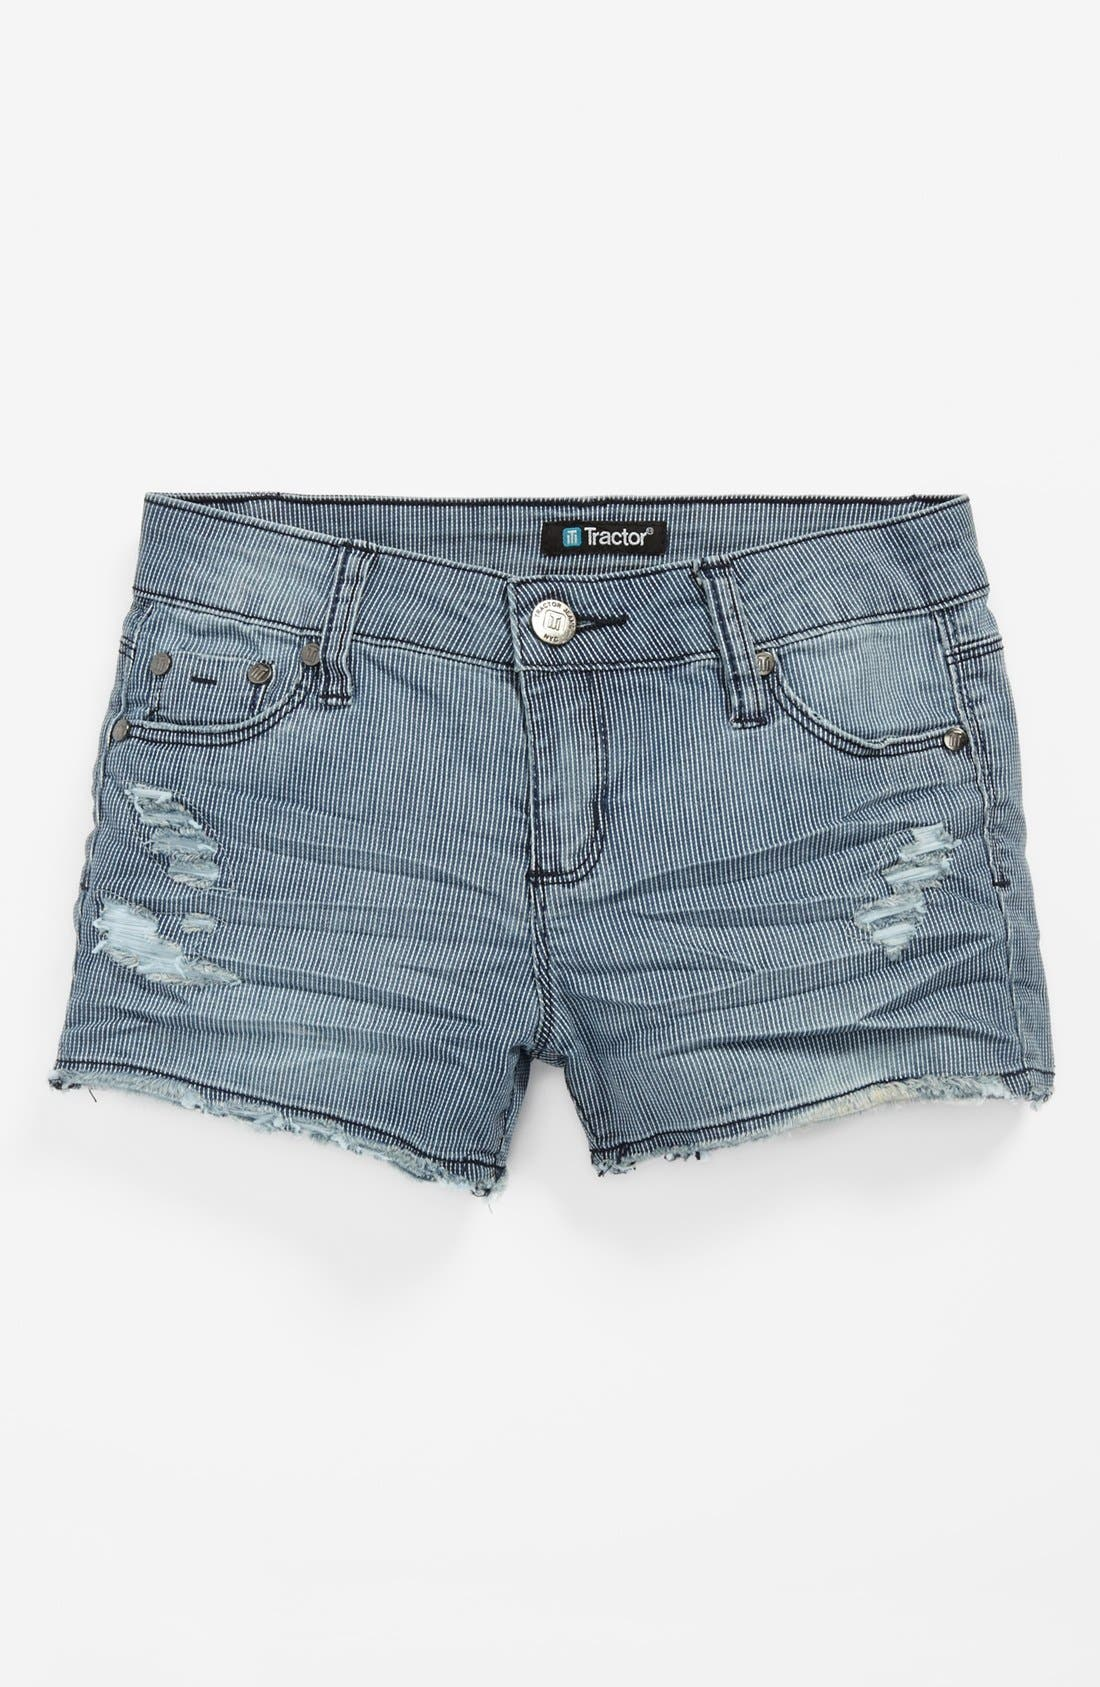 Main Image - Tractr Railroad Shorts (Big Girls)